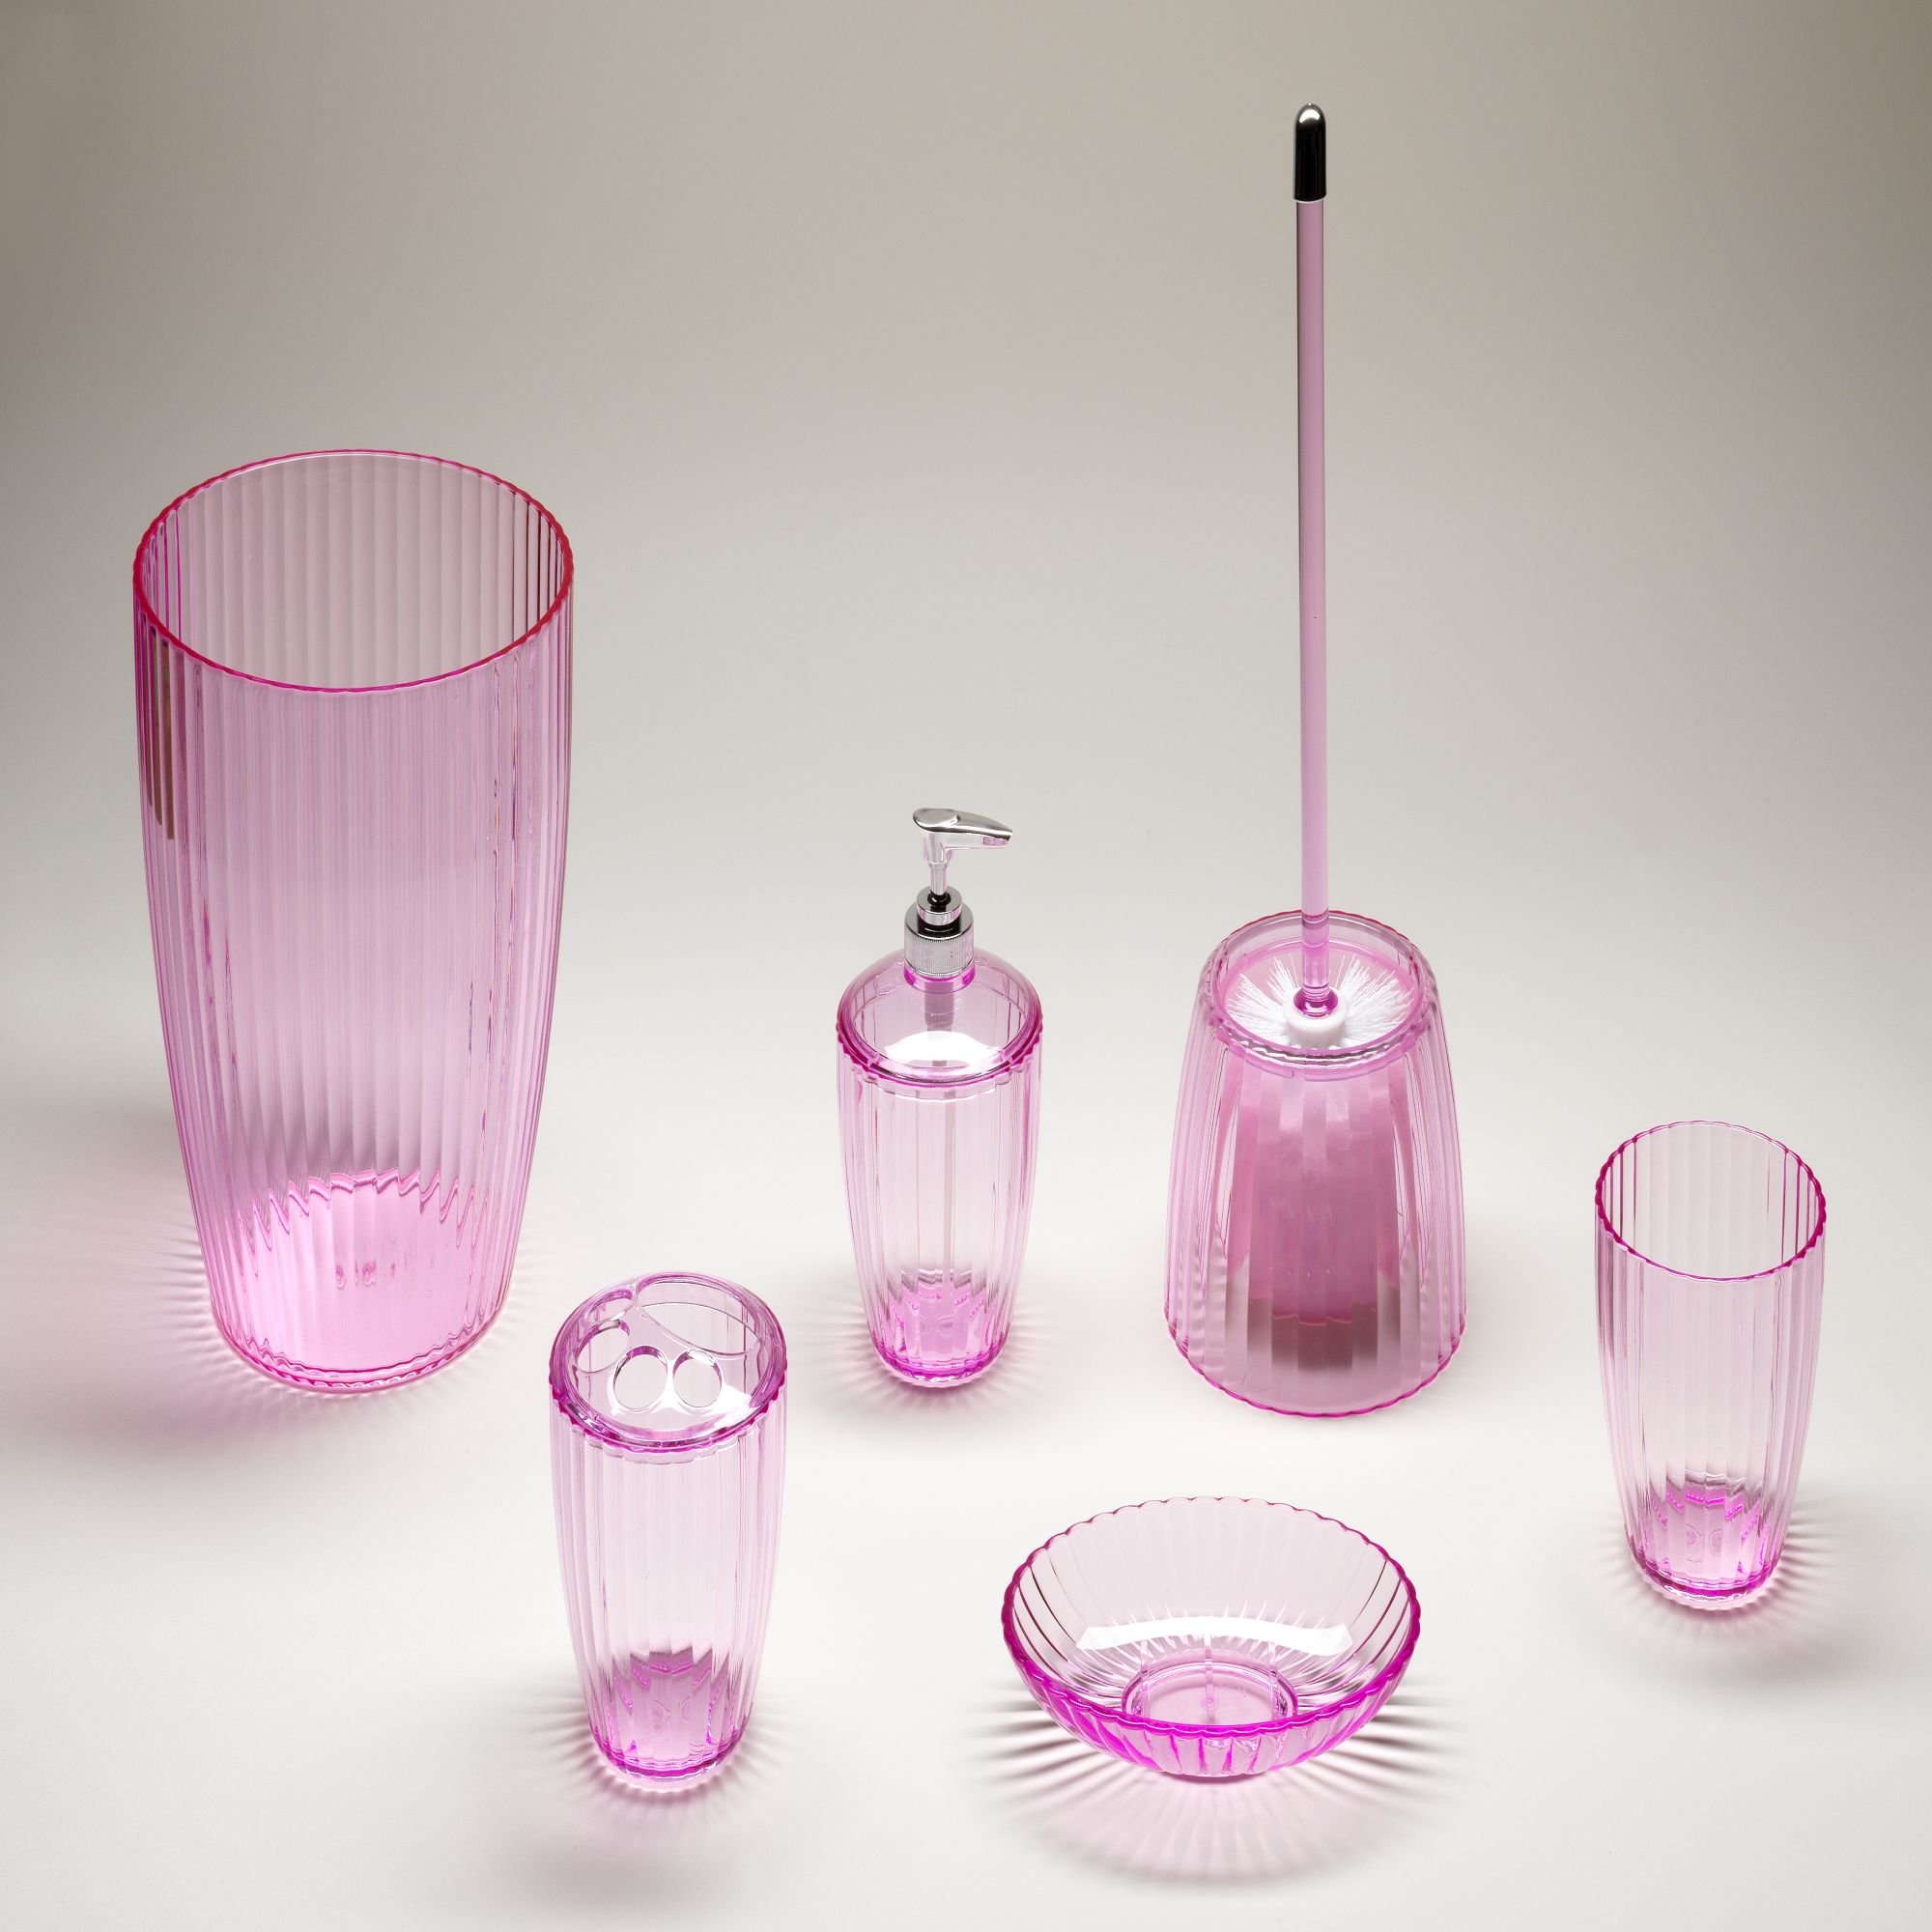 Pink, Ribbed 5 Piece Acrylic Bath Accessory Set